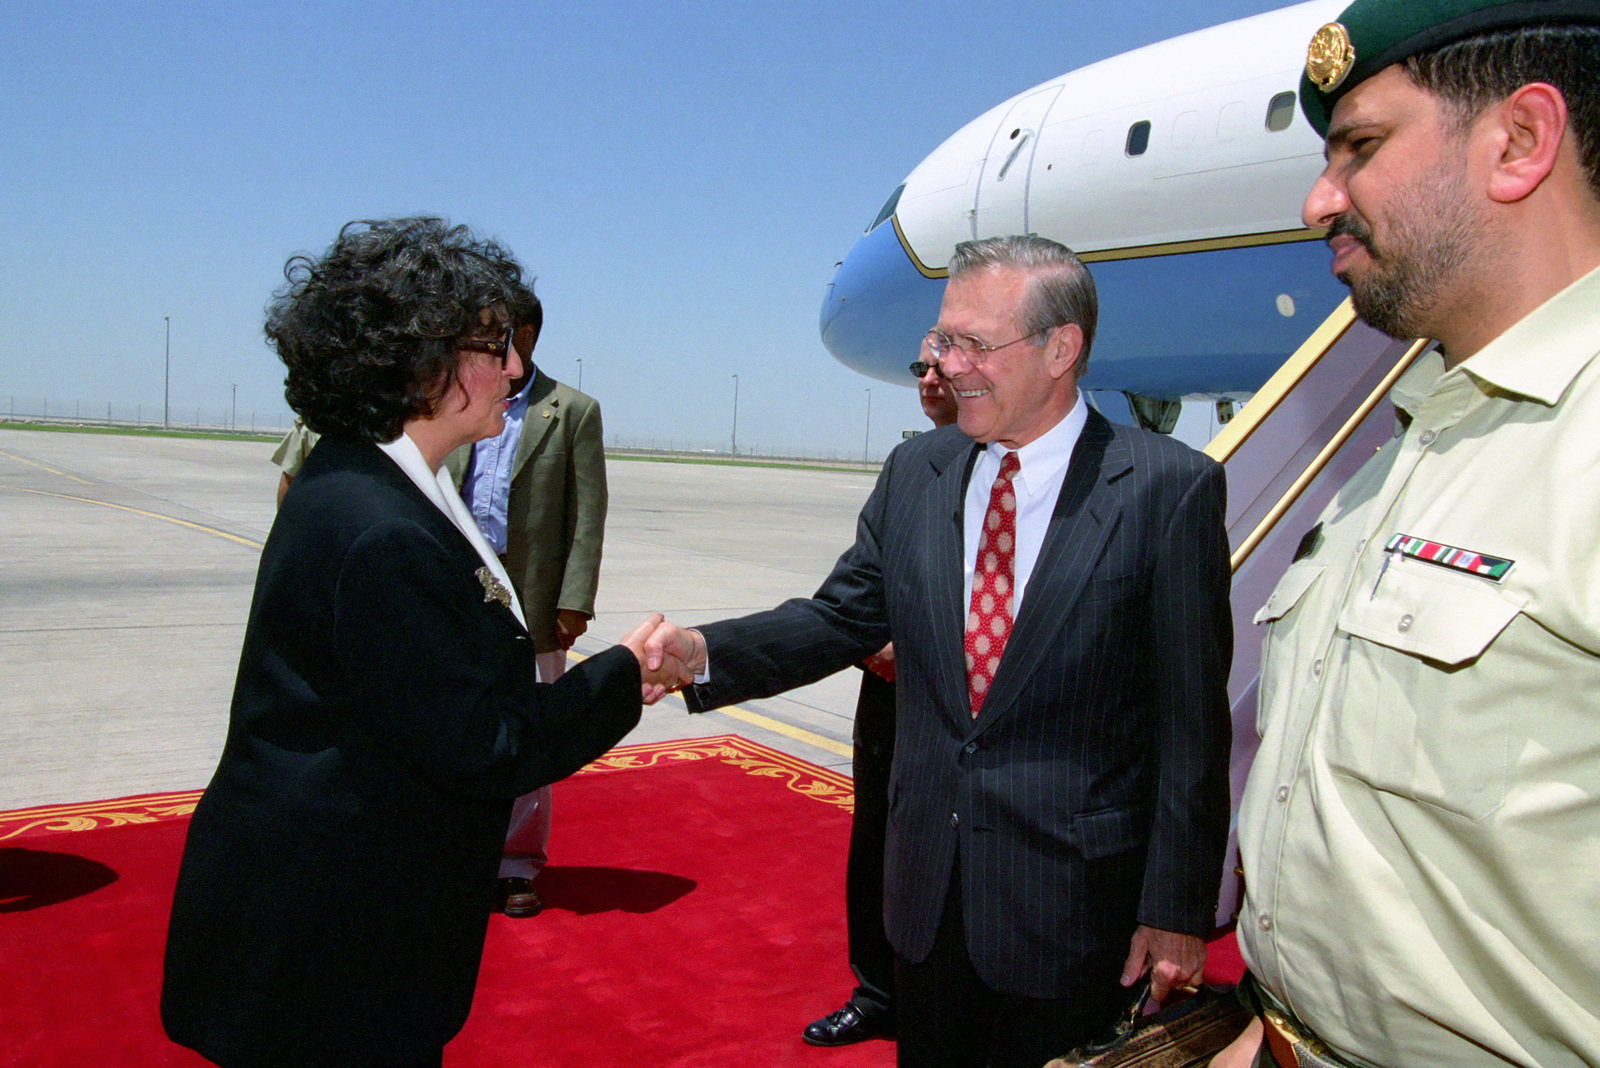 The Honorable Marcelle M. Wahba (left), U.S. Ambassador the the United Arab Emirates, greets the Honorable Donald H. Rumsfeld (center), U.S. Secretary of Defense, upon his arrival at Abu Dhabi International Airport, Abu Dhabi, United Arab Emirates, on April 27, 2003, for an official visit as part of his seven day tour of the region.  OSD Package No. A07D-00575 (DOD PHOTO by Helene C. Stikkel) (Released)